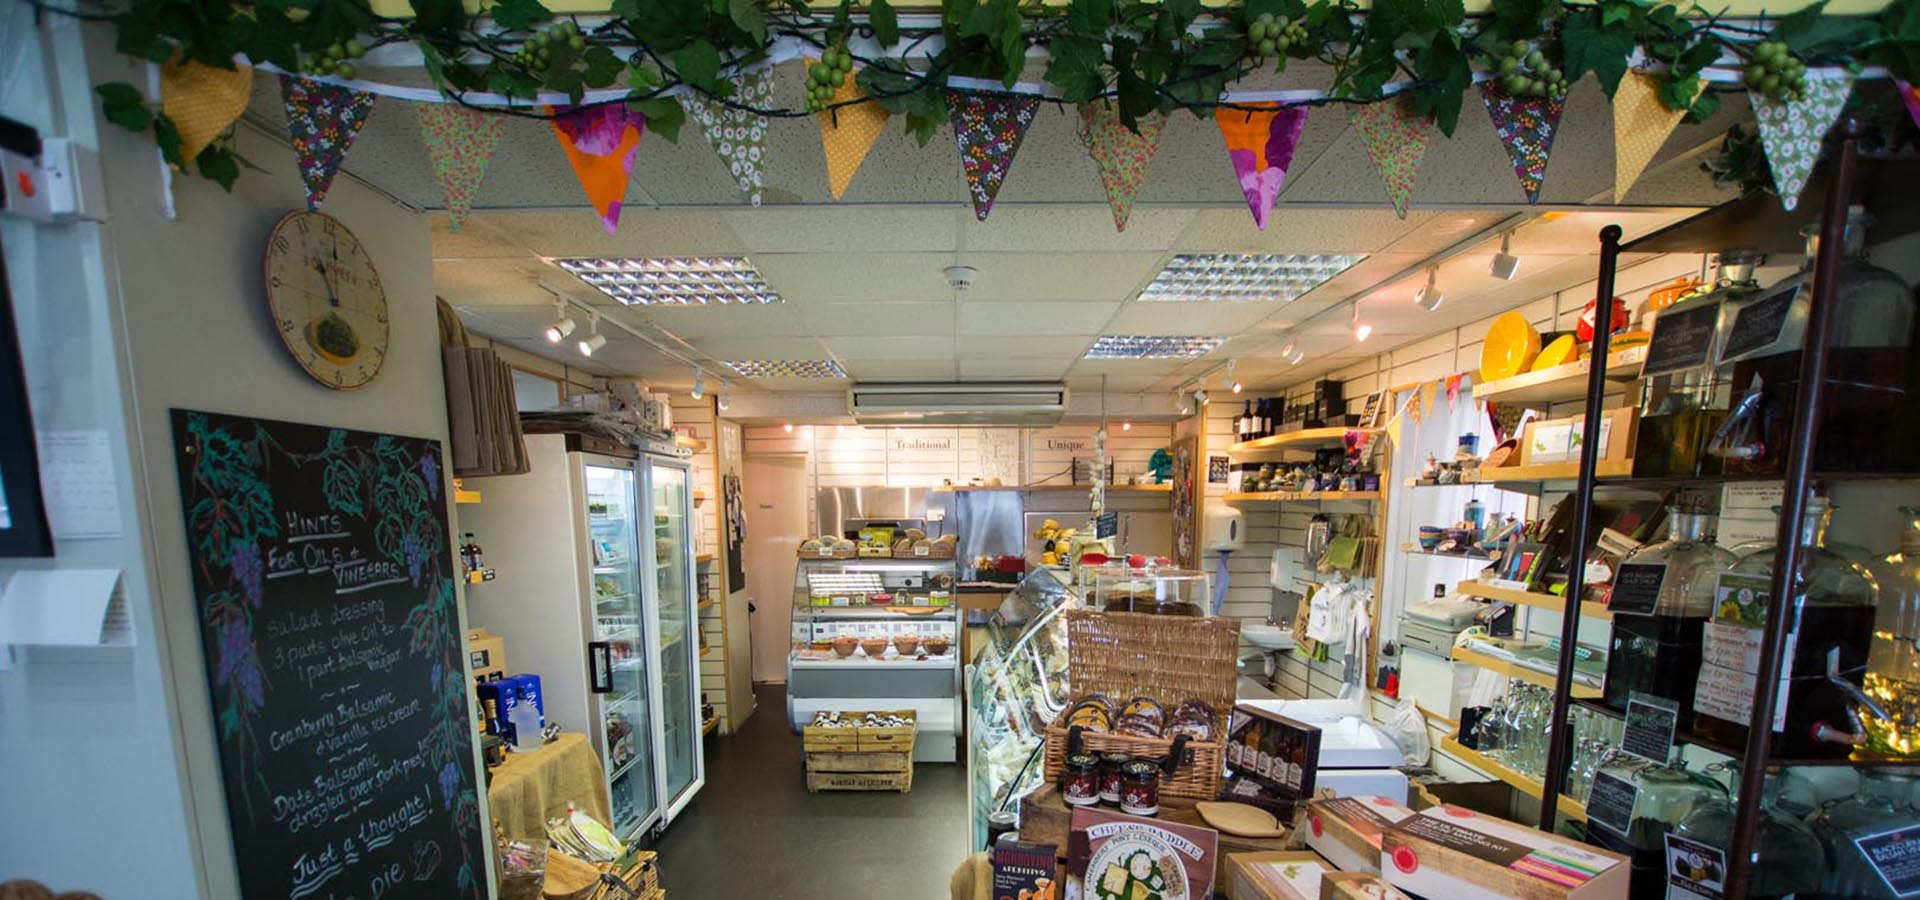 Keswick Cheese Deli Shop Interior